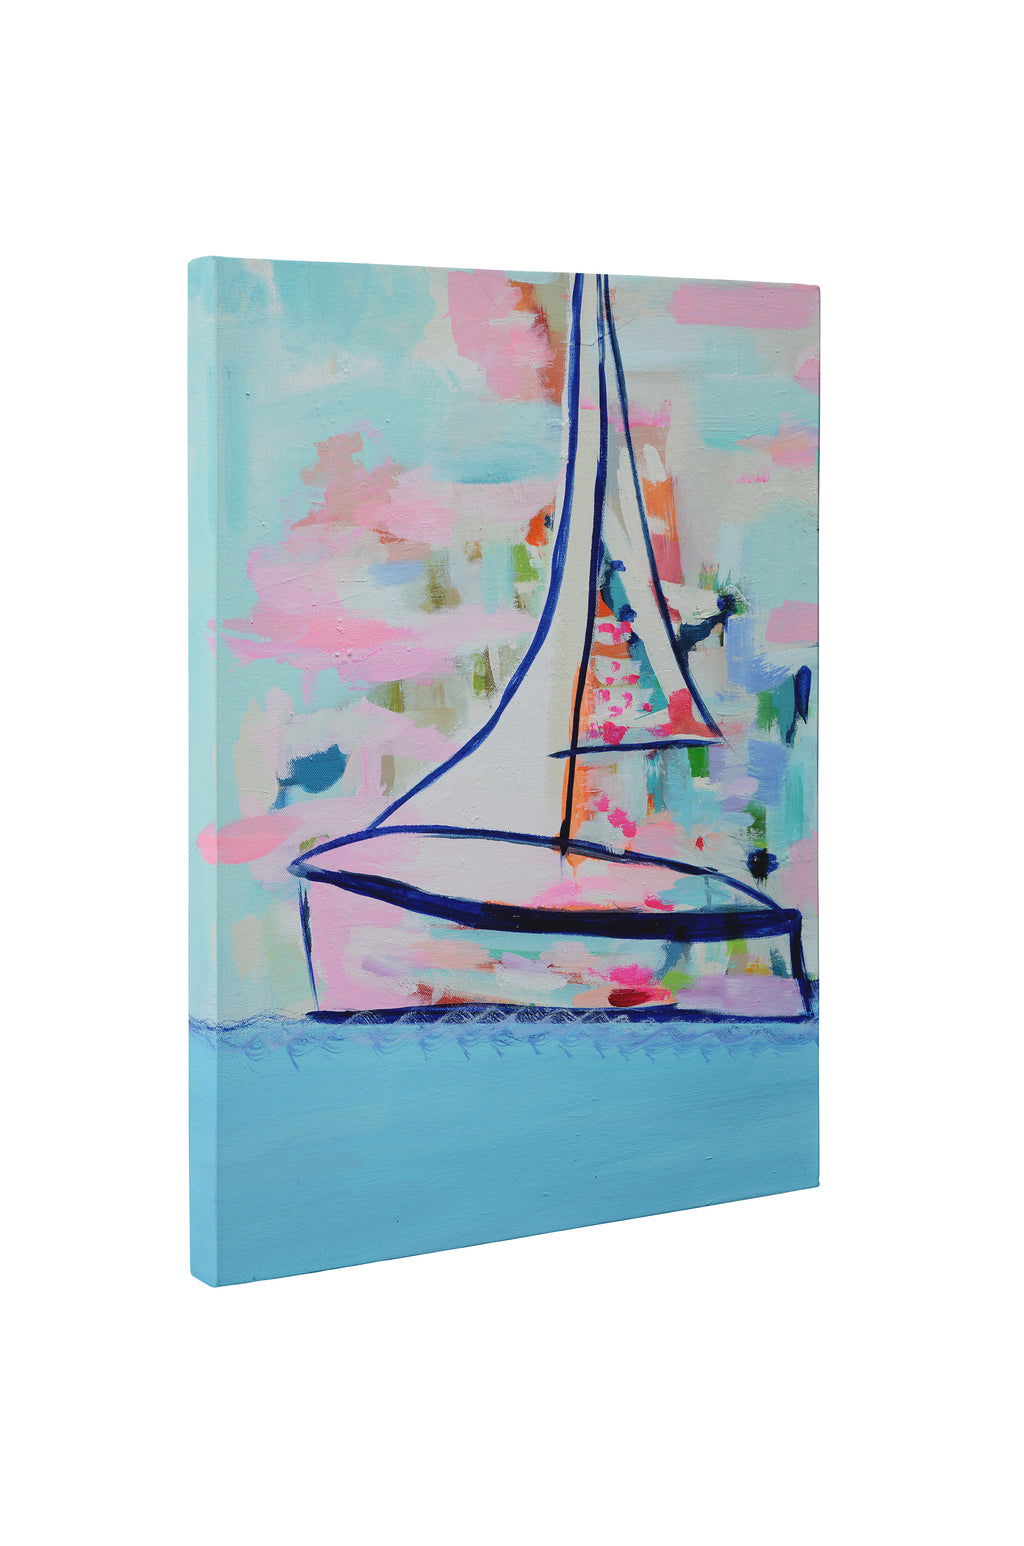 NEON DIVA Premium Canvas Gallery Wrap By Susan Skelley